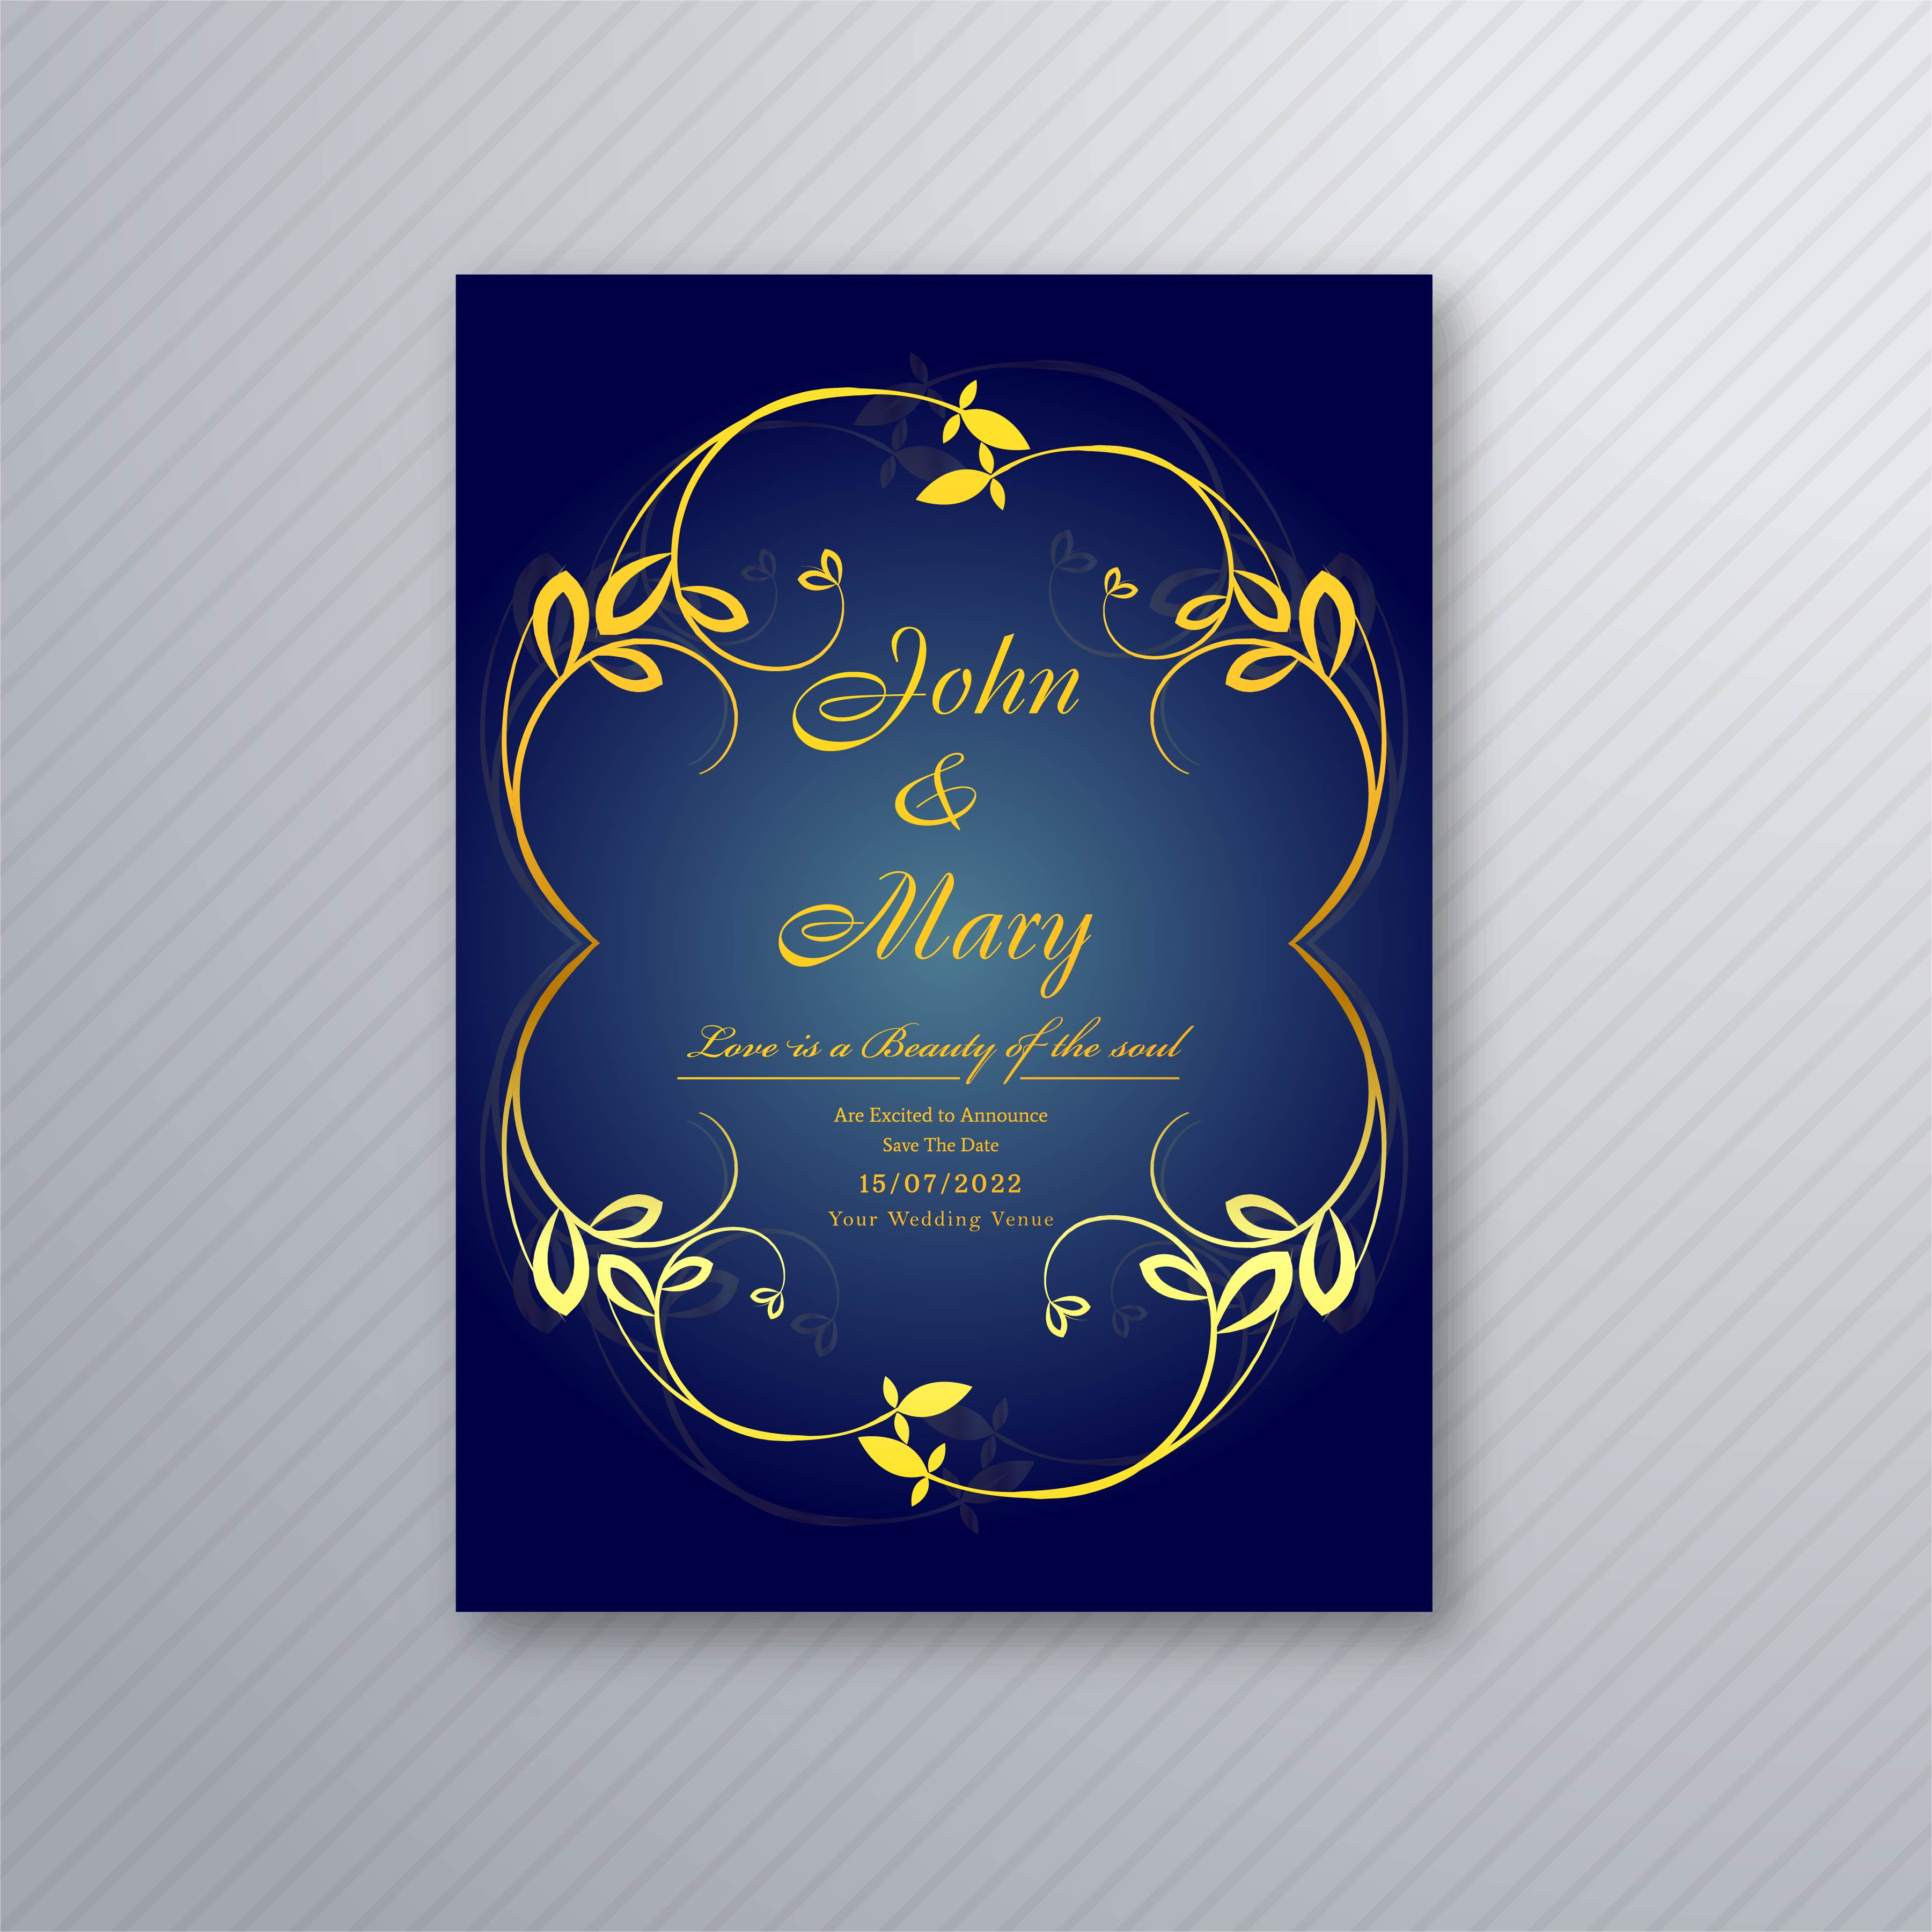 Invitation Card Template Video: Abstract Stylish Wedding Invitation Card Floral Template